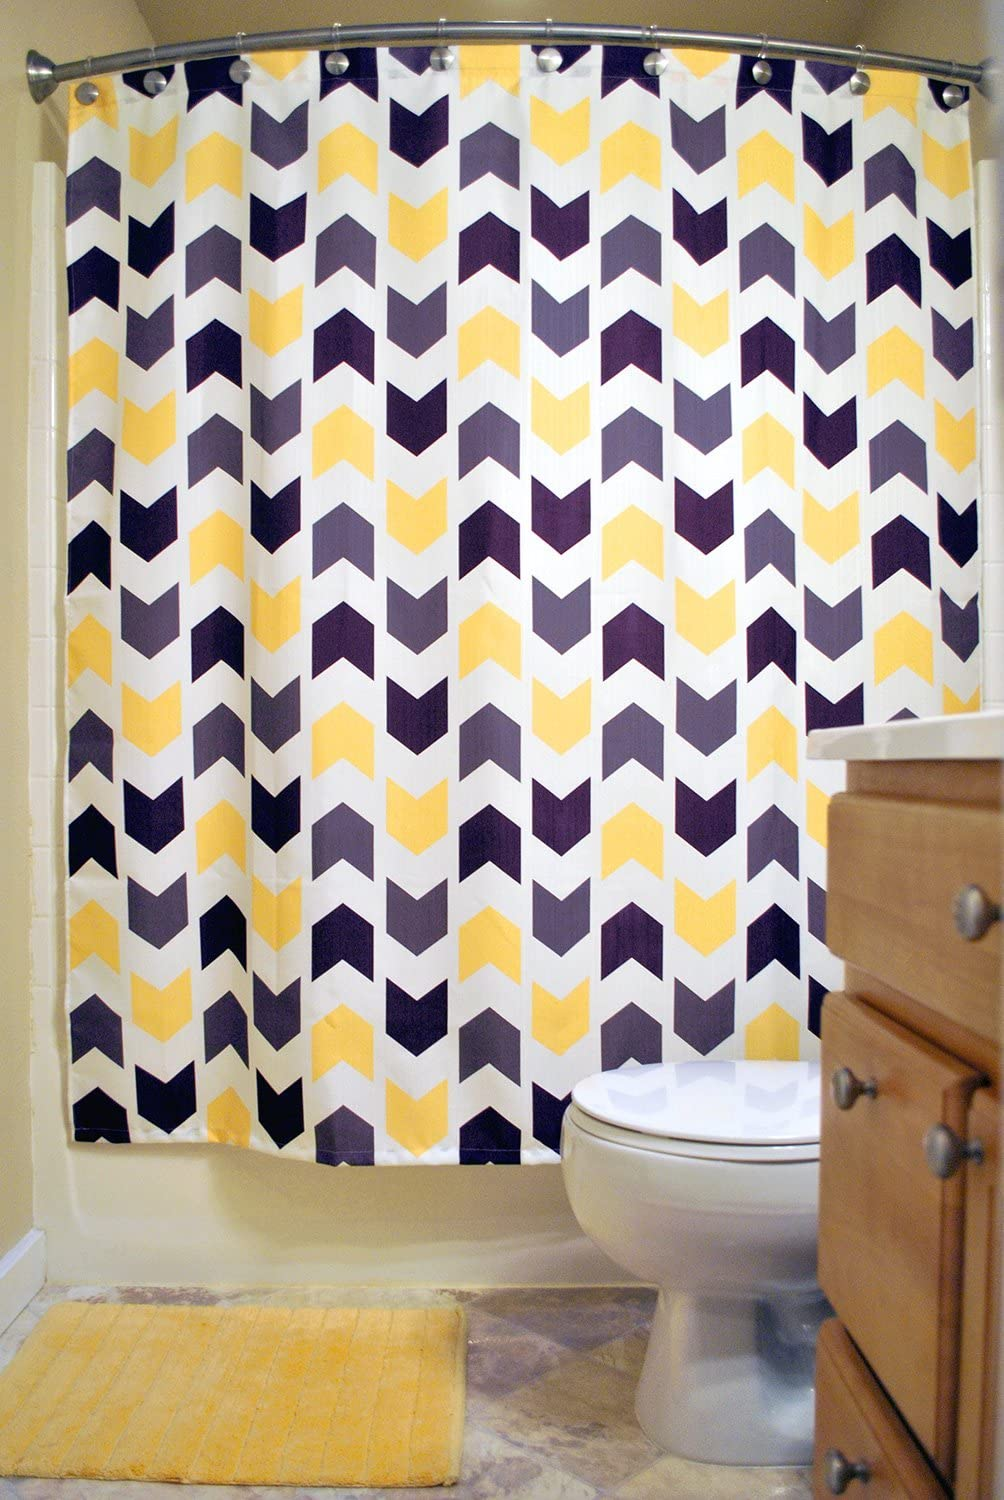 DII Oceanique Shower Curtain 100/% Polyester Main Bathroom 72 x 72 Machine Washable Kids Multi Colored Tribal Chevron Extra Bathroom for Everyday Use Teens